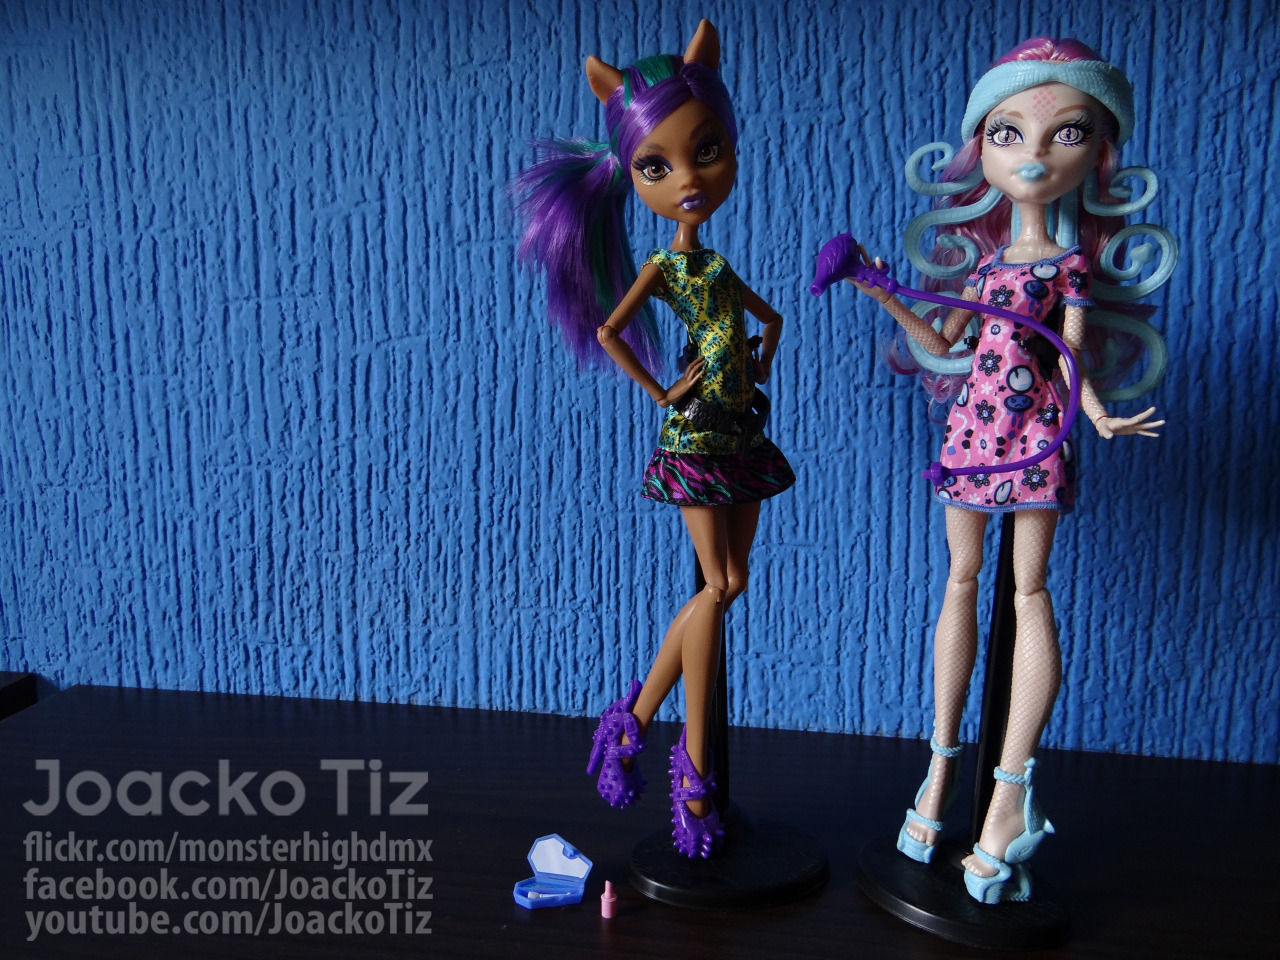 joackotiz:  Monster High 2 pack. Scare & Makeup [Viperine Gorgon & Clawdeen Wolf]